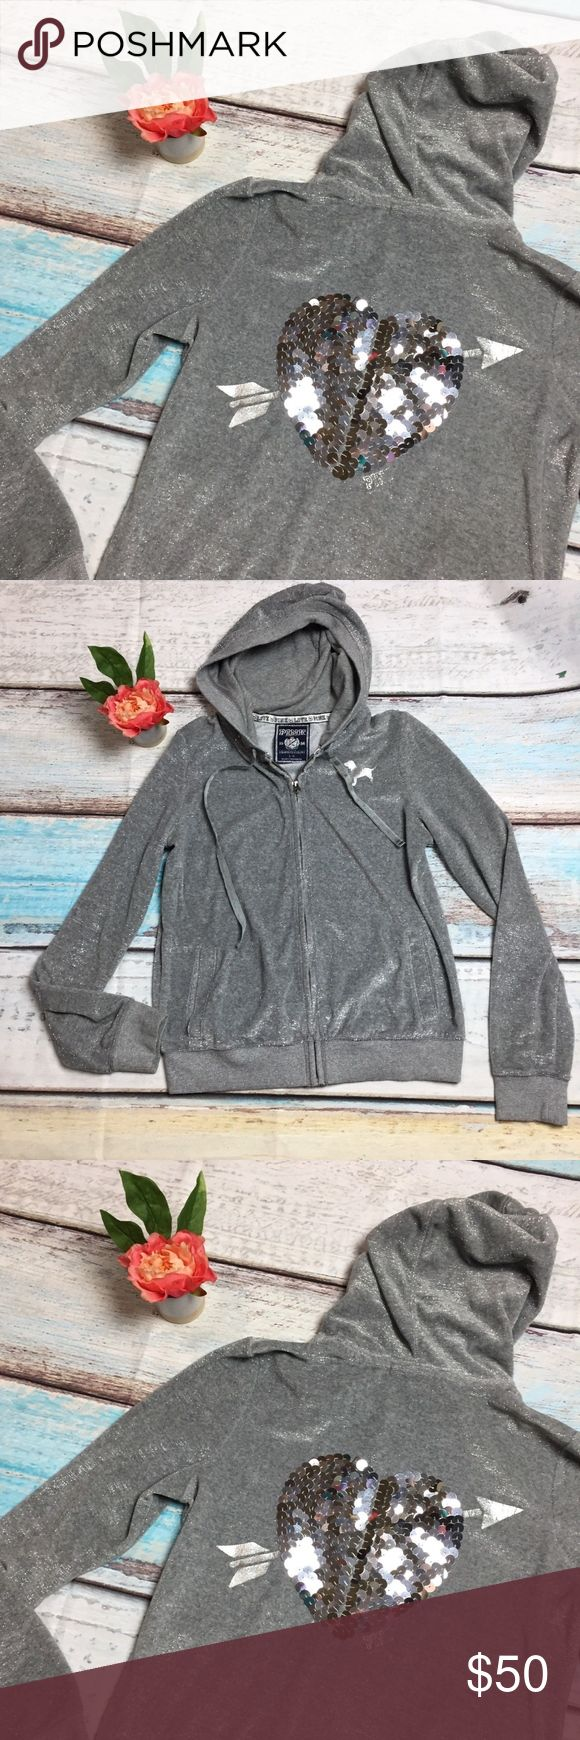 "PINK by VS Silver Sequins Heart Zip Up Hoodie Victoria's Secret PINK Size Large  Shimmery silver zip up hoodie with pockets and sequins heart on back with silver arrow detail.   Armpit to armpit: 20.5"" laying flat PINK Victoria's Secret Sweaters"